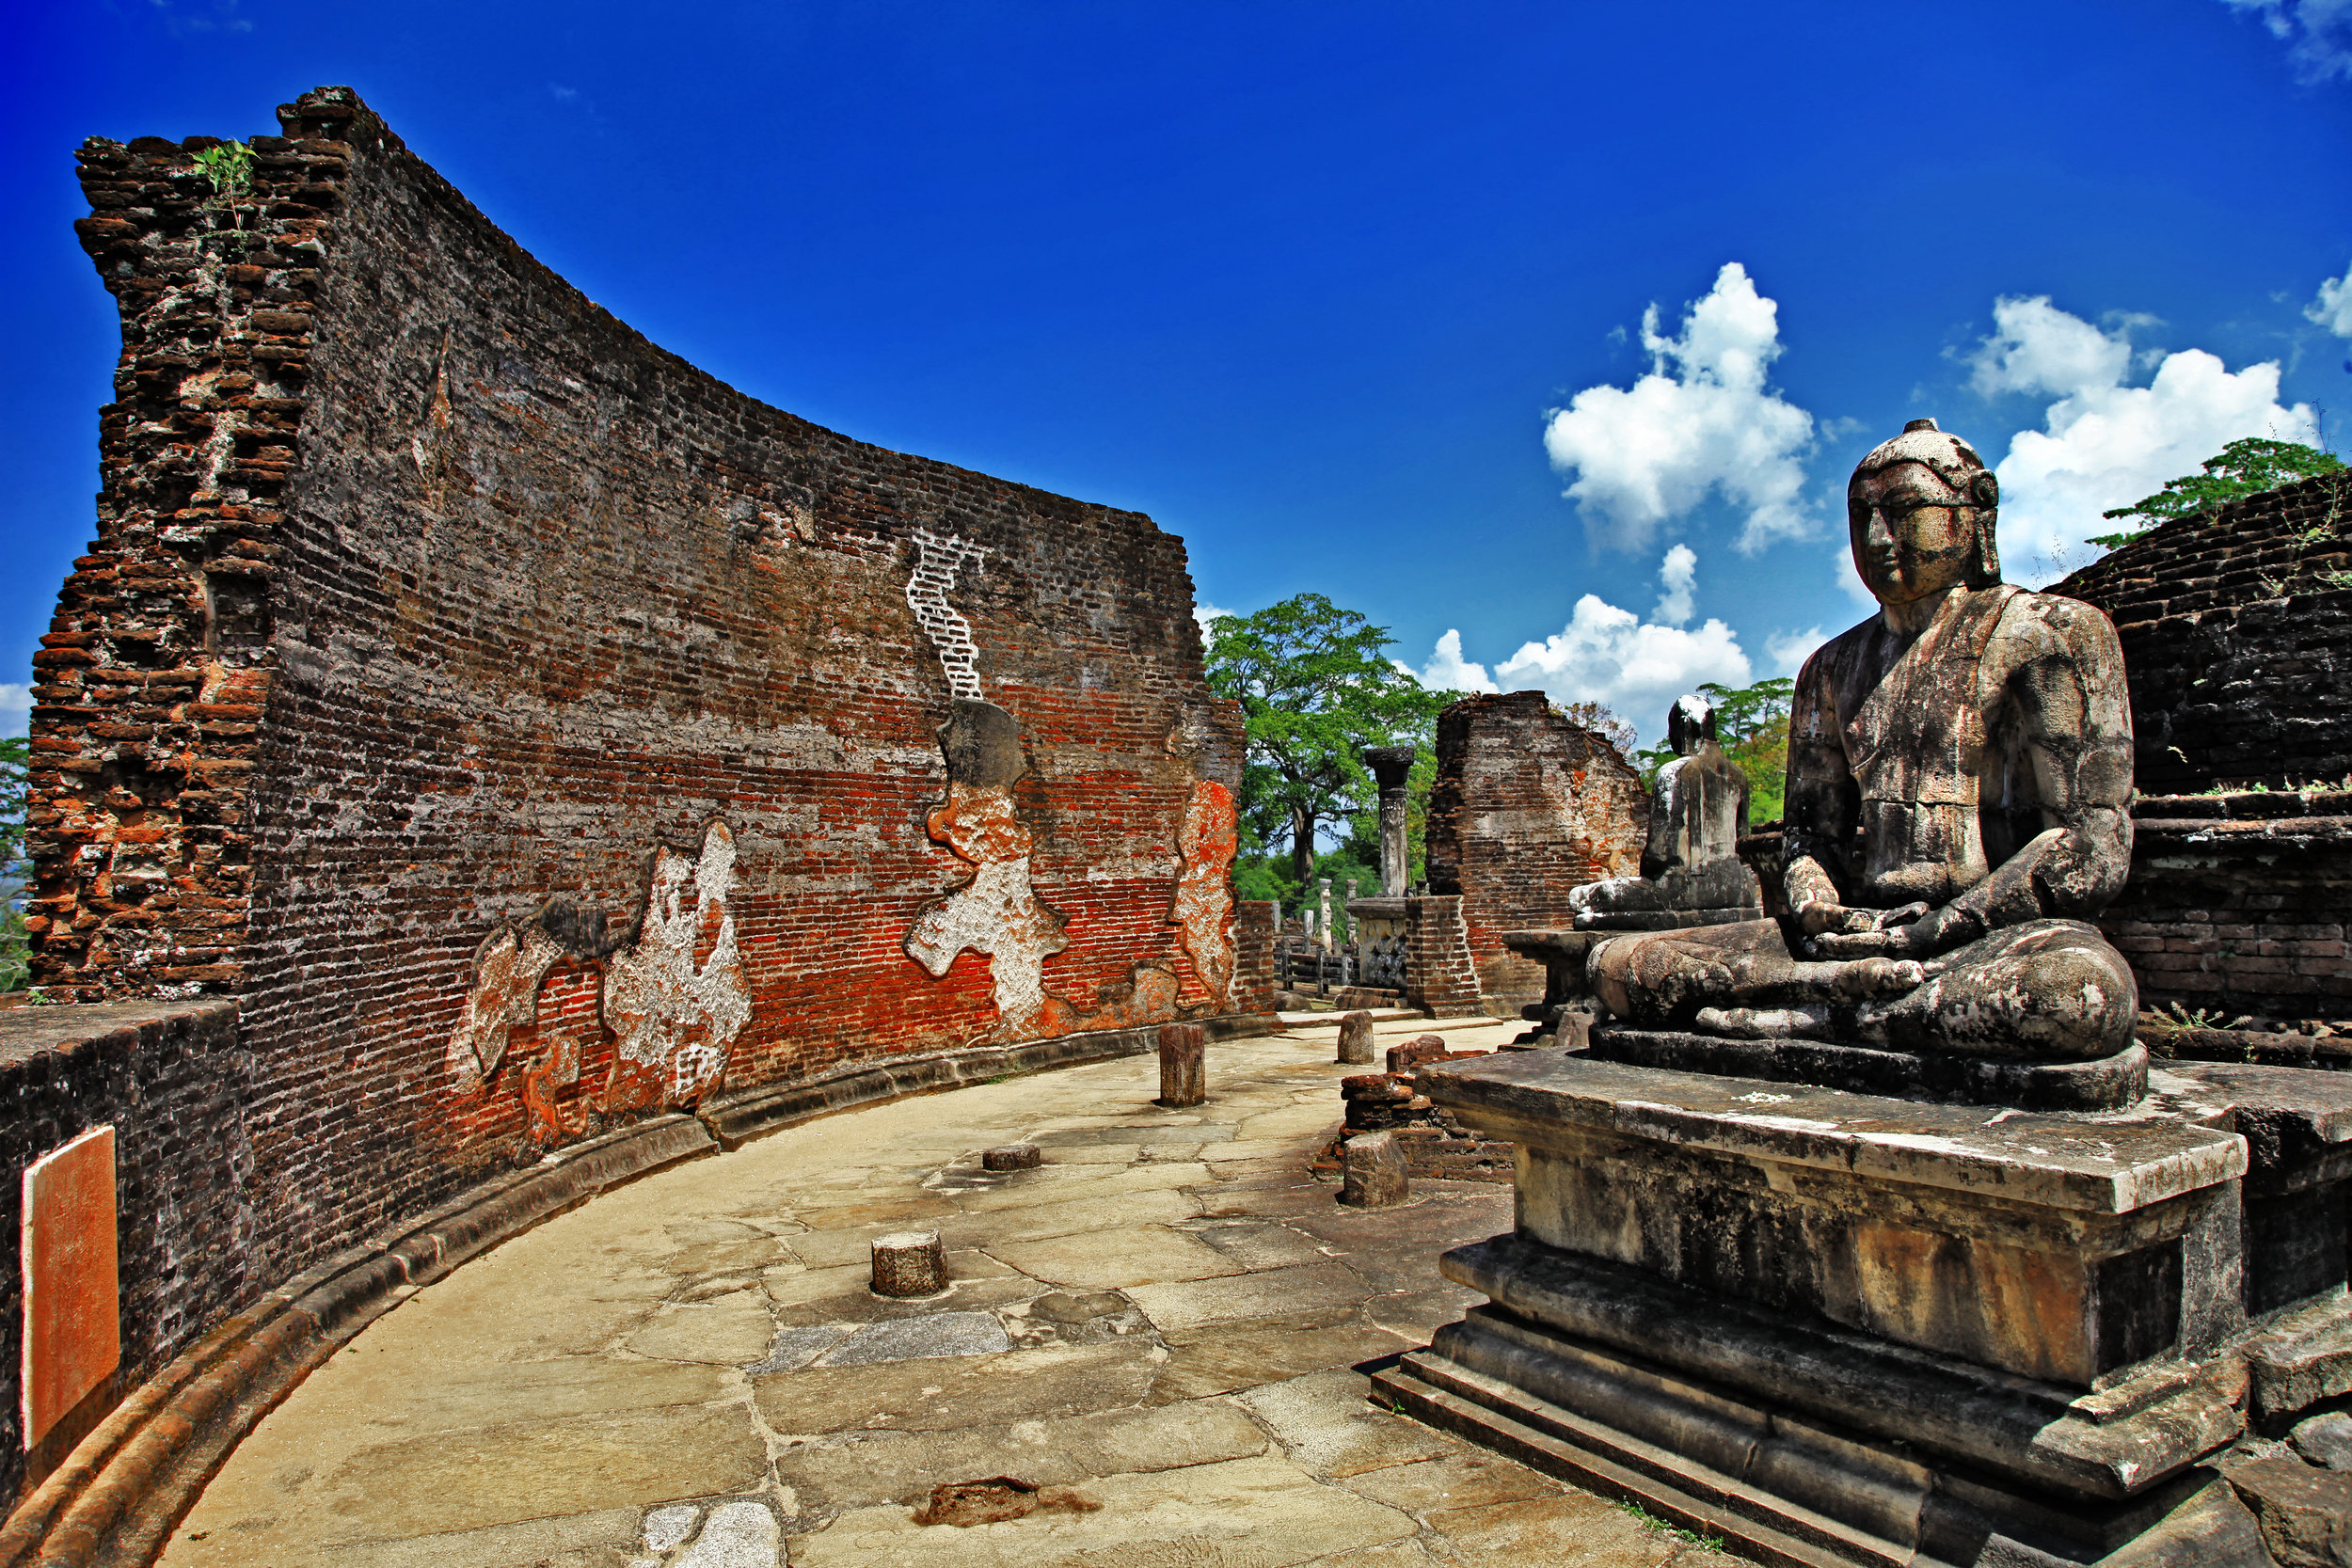 invite-to-paradise-sri-lanka-holiday-honeymoon-vacation-specialists-cultural-triangle-excursion-ancient-city-ruins-polonnaruwa-medieval capital-of-ceylon-UNESCO-world-heritage-site-2.jpg